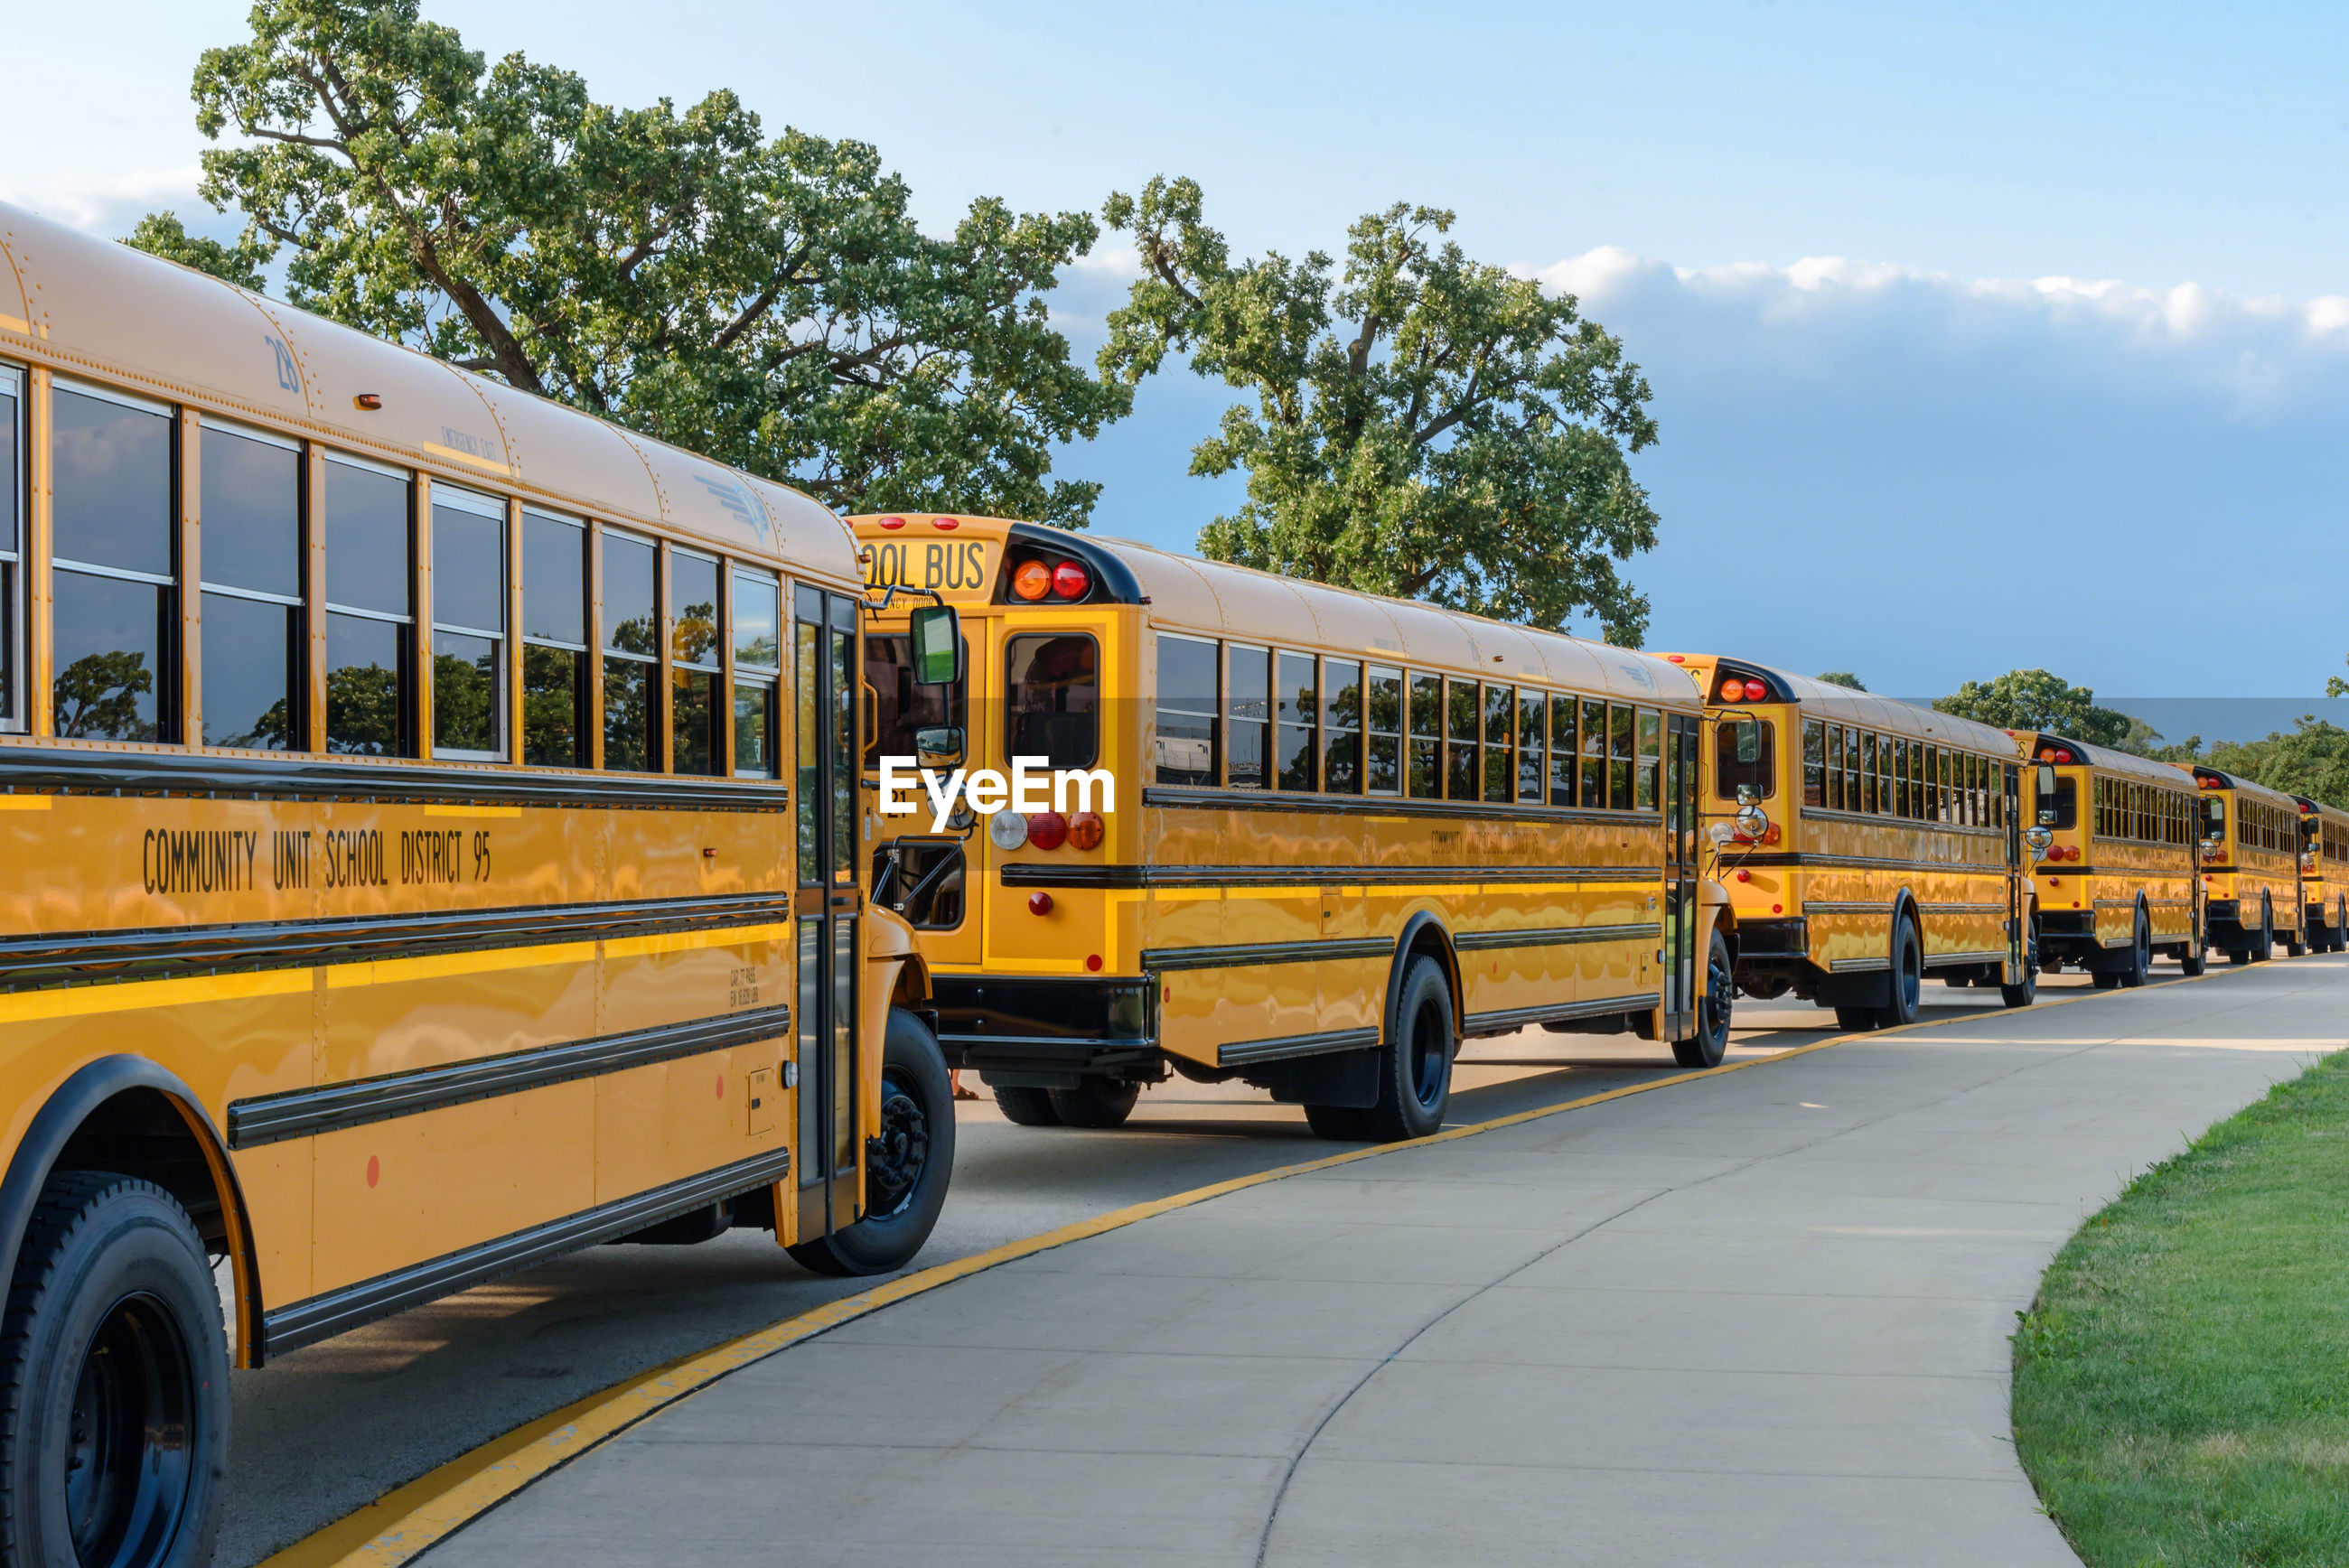 transportation, mode of transport, yellow, land vehicle, school bus, day, public transportation, bus, sky, outdoors, tree, no people